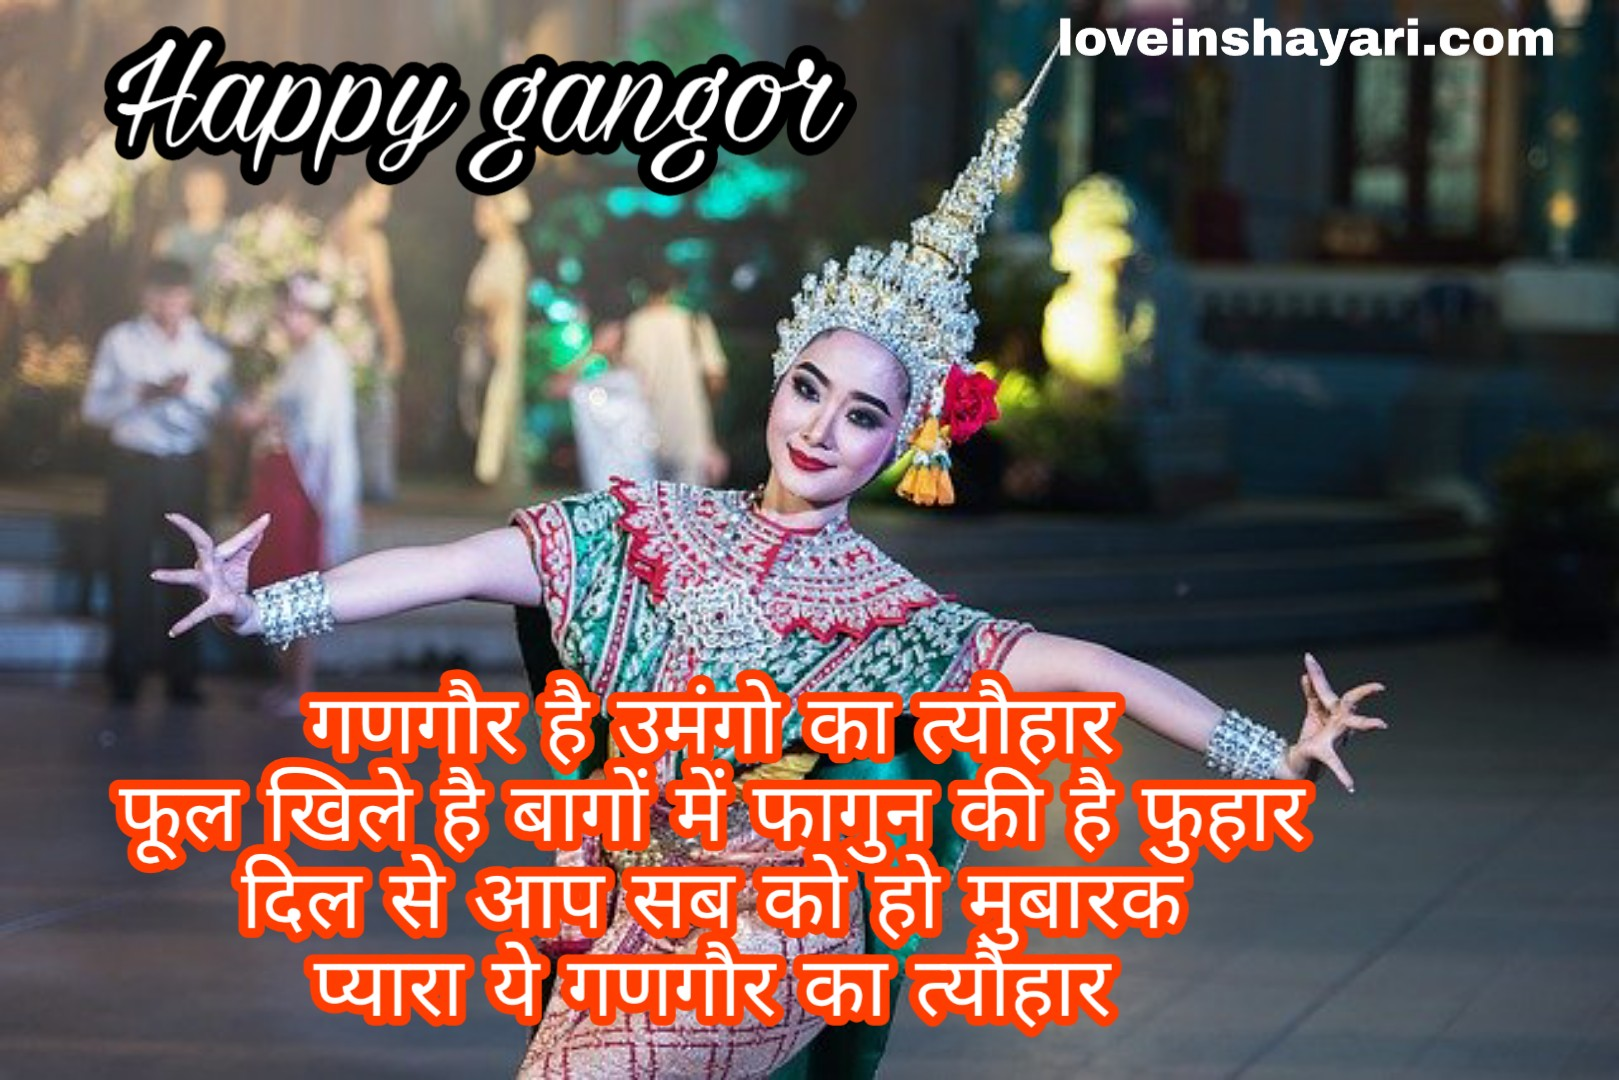 Gangor wishes shayari images message quotes